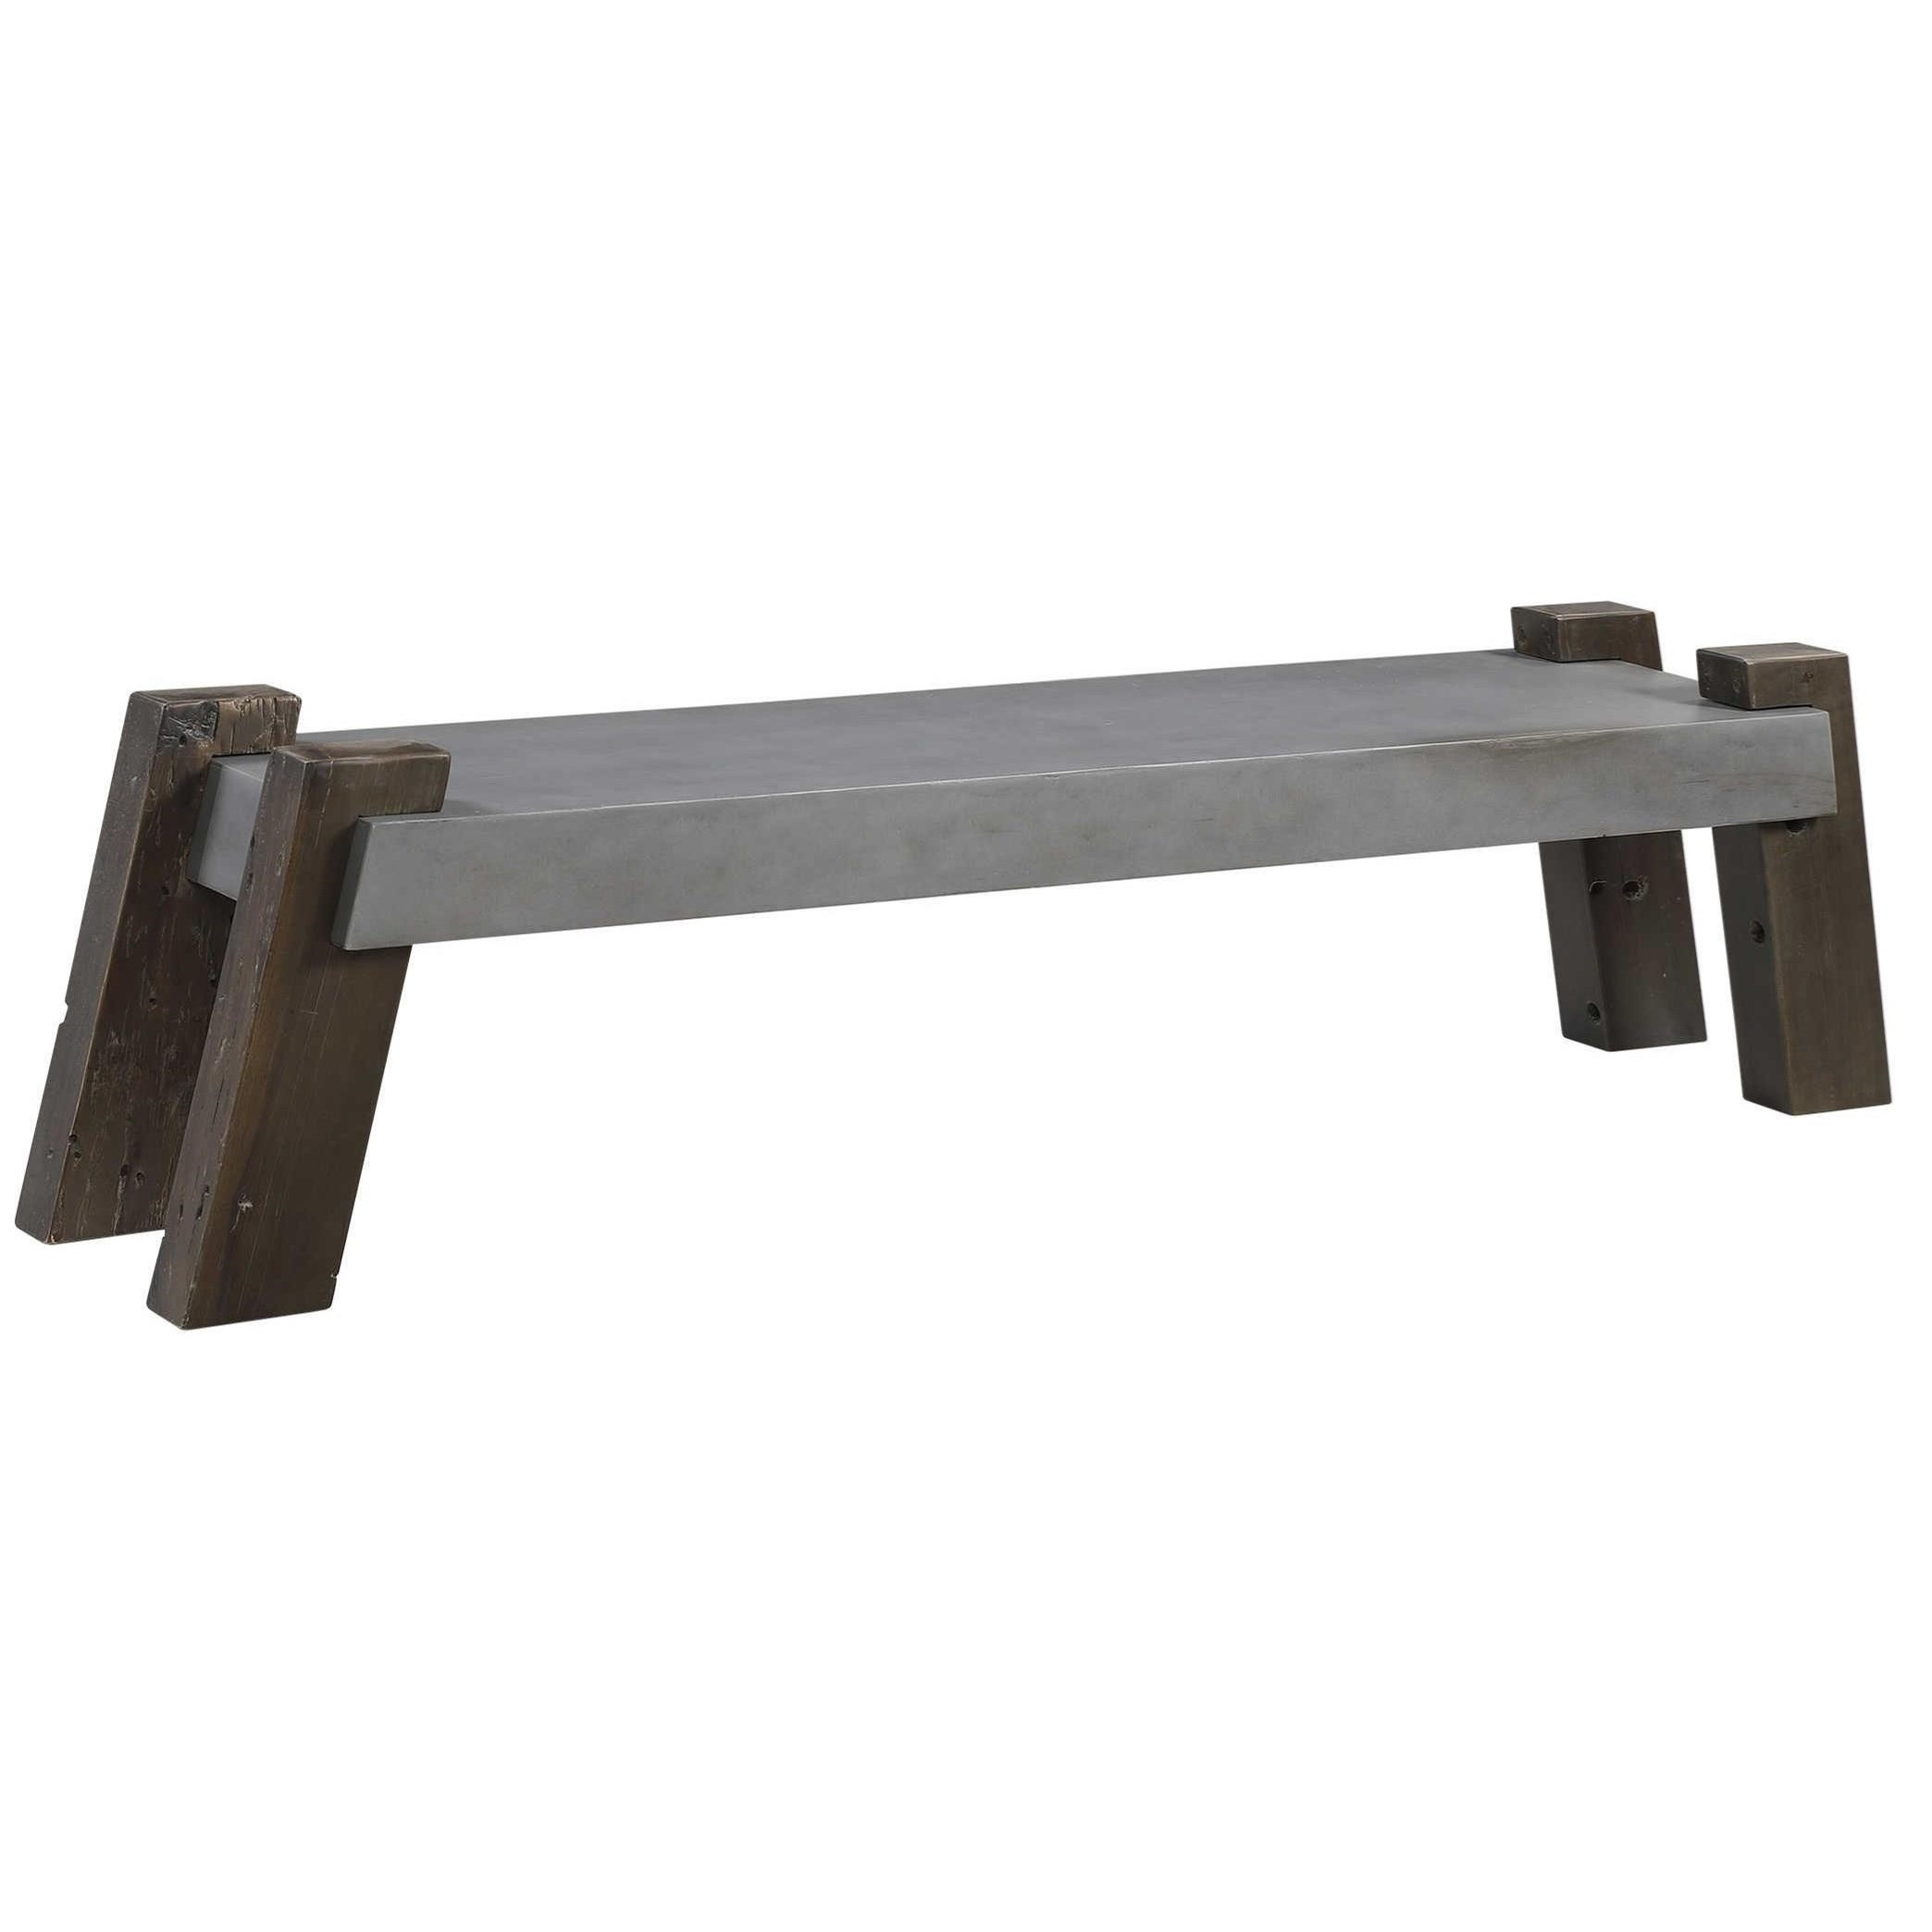 Accent Furniture - Benches Lavin Industrial Concrete Bench by Uttermost at Dunk & Bright Furniture